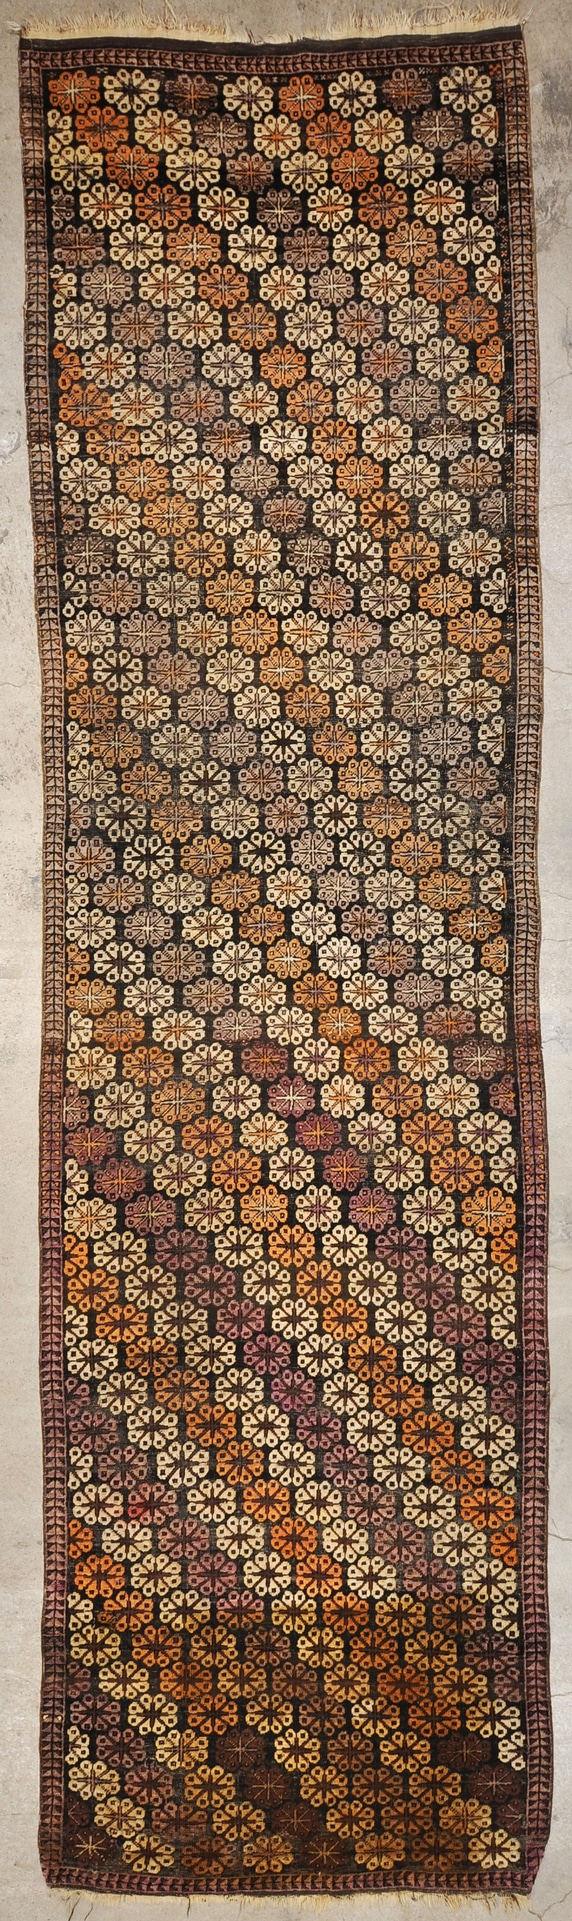 Fine Baluch Runner rugs and more oriental carpet 43892-